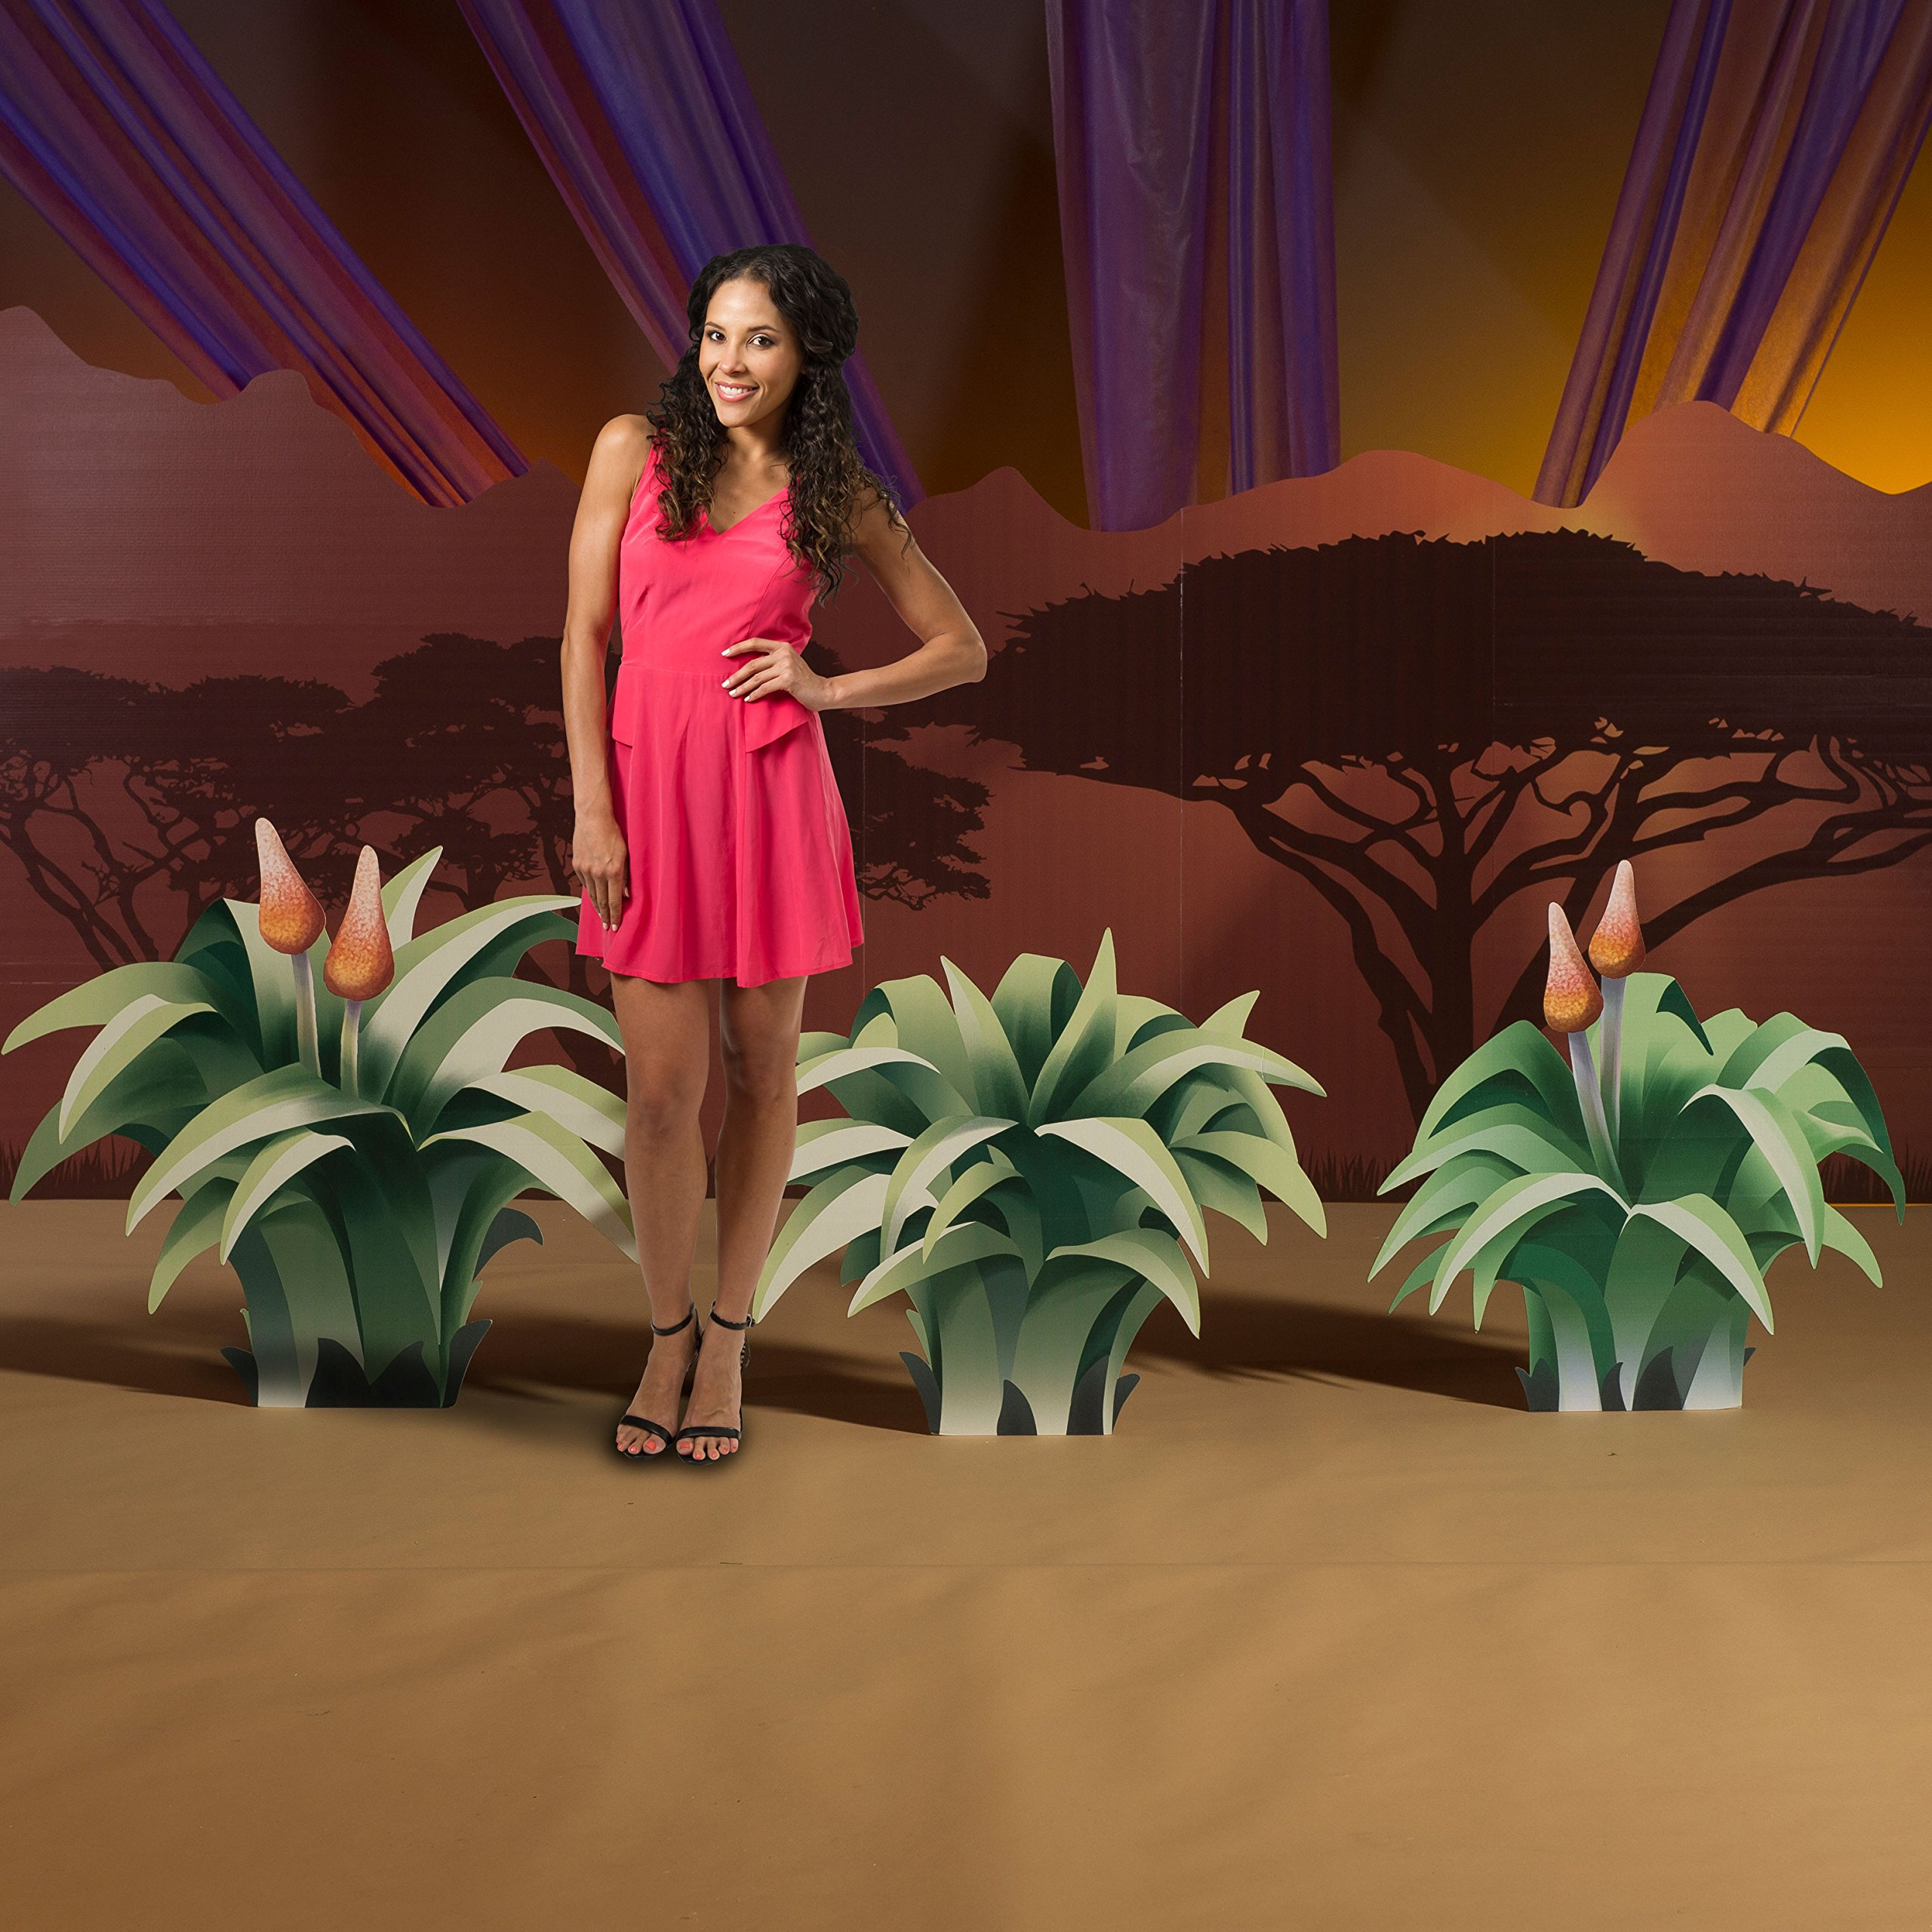 2 ft. 5 in. to 2 ft. 11 in. Wild Jungle Safari Dreams Grass Standees Standup Photo Booth Prop Background Backdrop Party Decoration Decor Scene Setter Cardboard Cutout